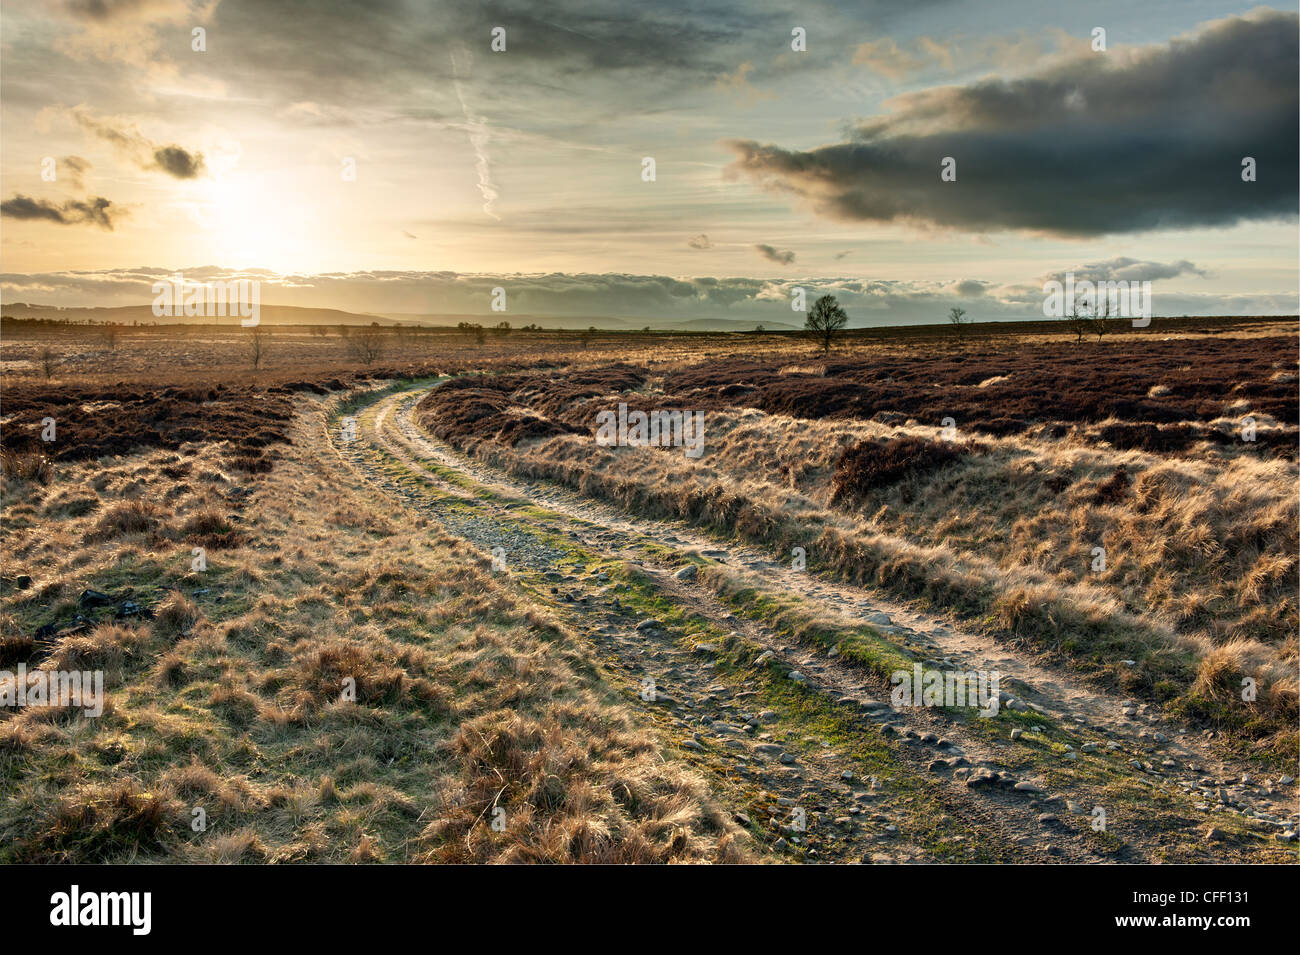 'Moss Road'   Public Bridleway at Totley Moss in Derbyshire 'Great Britain' - Stock Image